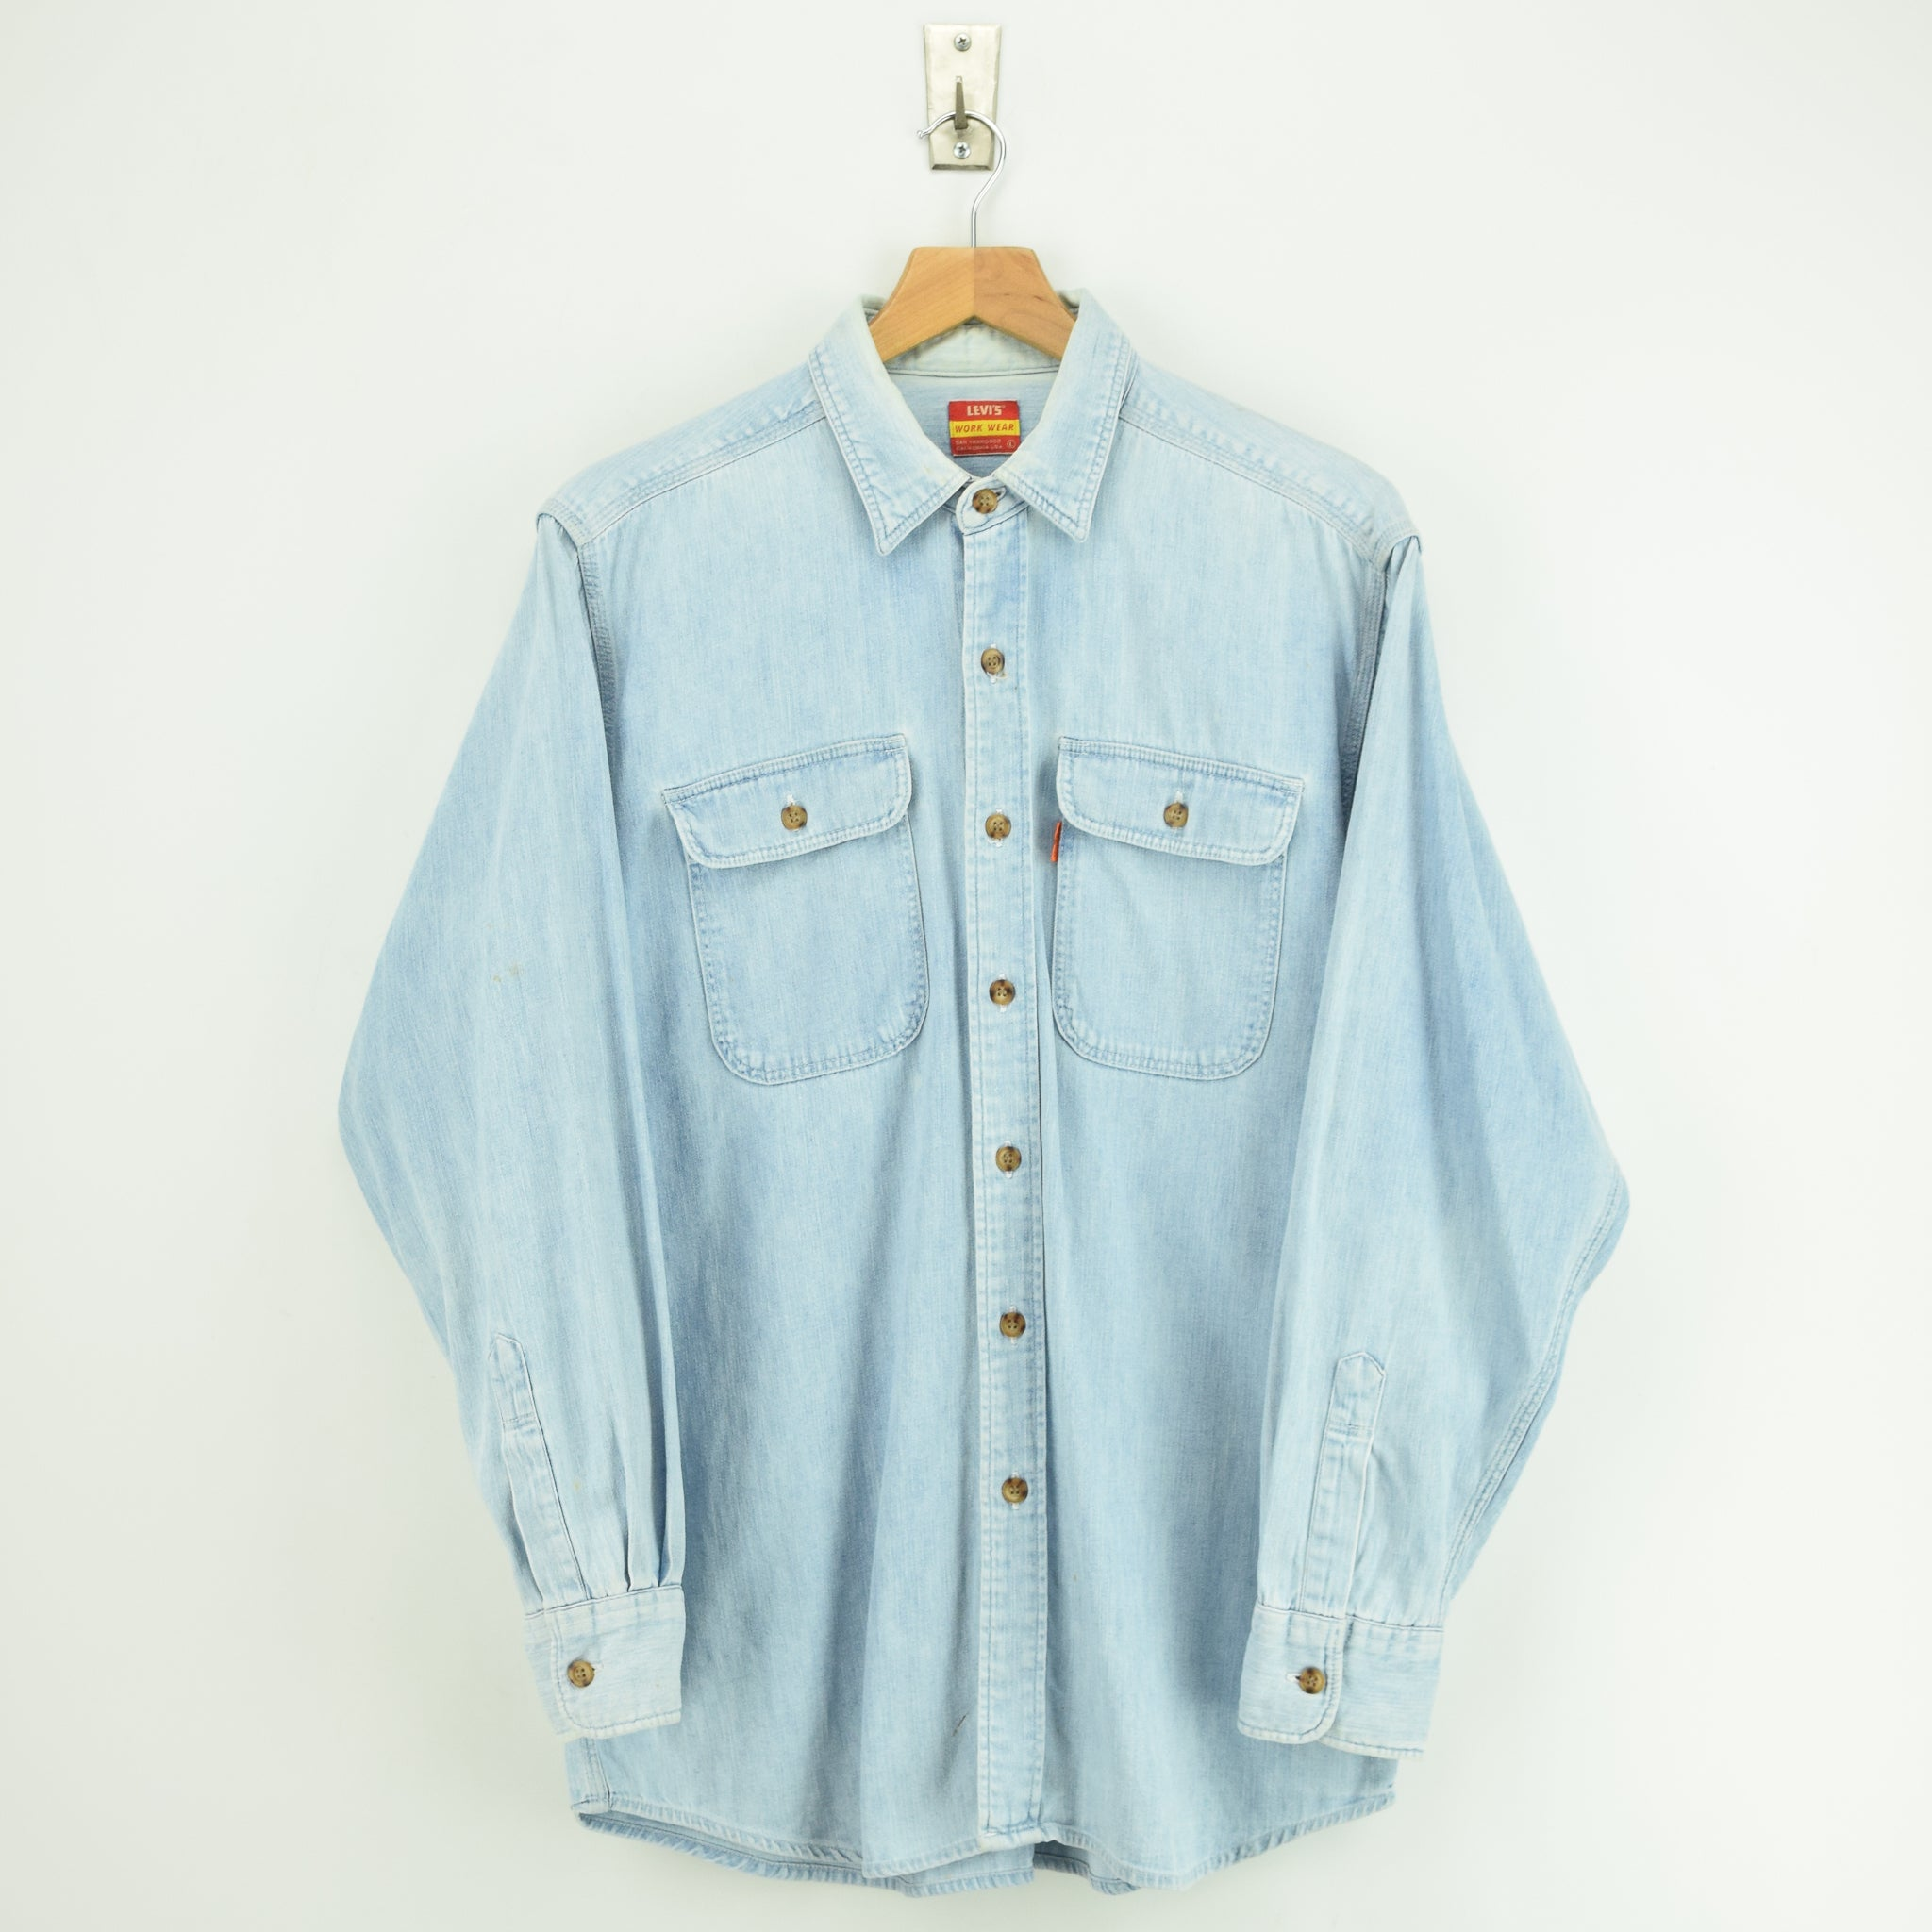 656937aedc0 Vintage Levi s Work Wear Orange Tab Stonewash Blue Denim Shirt L front ...